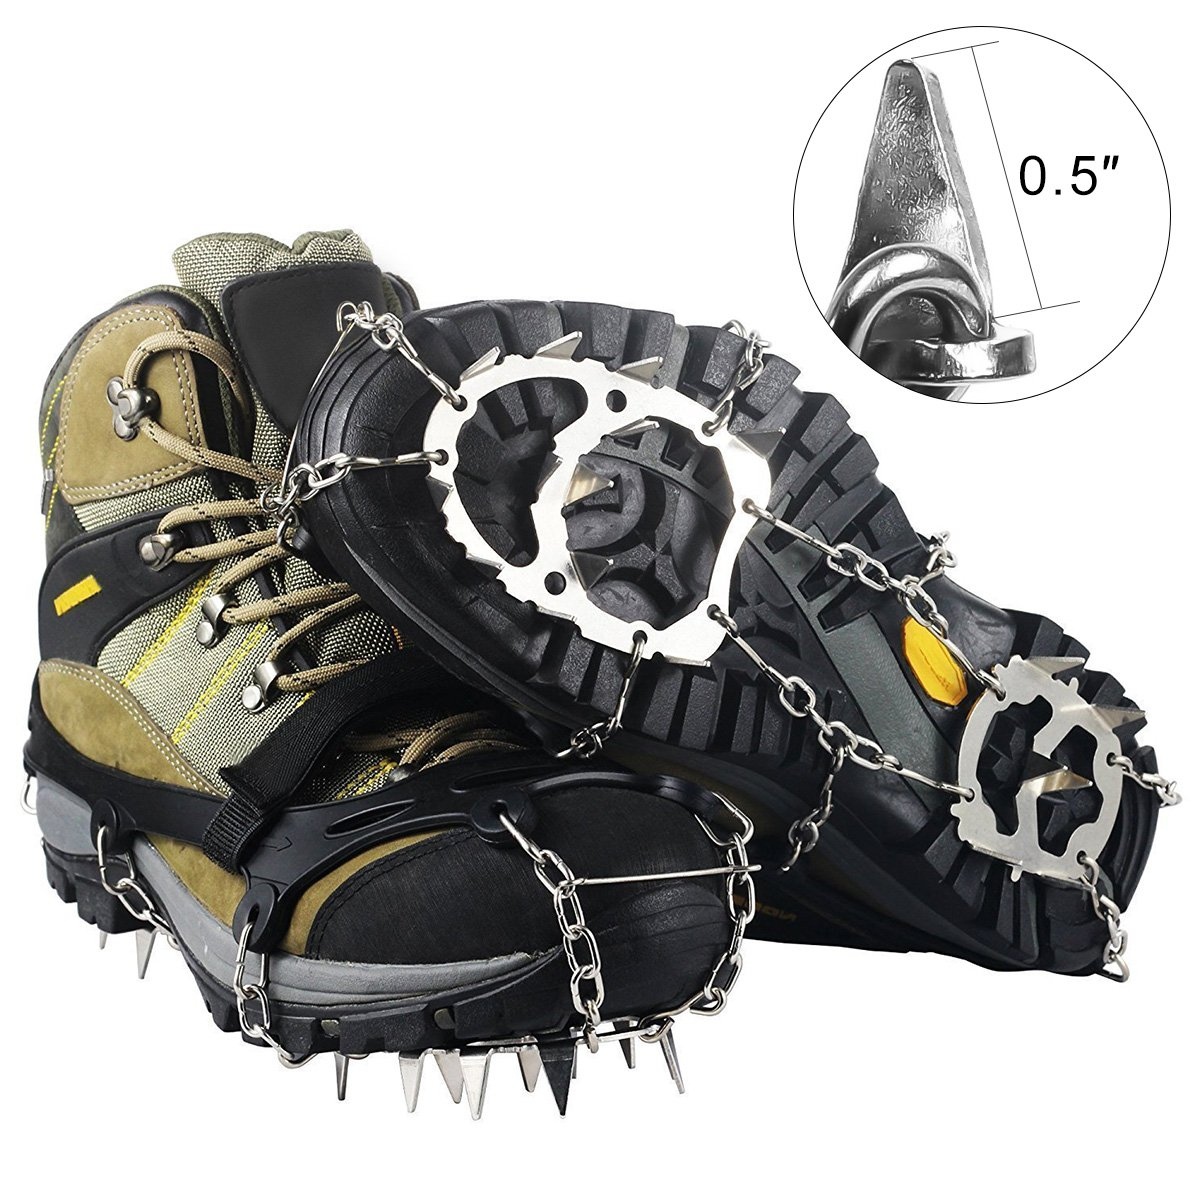 SHANLU Snow Grips, Traction Cleats/Ice Grips for Shoes with 18 Spikes, Anti-Slip Stainless Steel Crampons for Mountaineering & Ice Climbing/Camping & Hiking (XL)